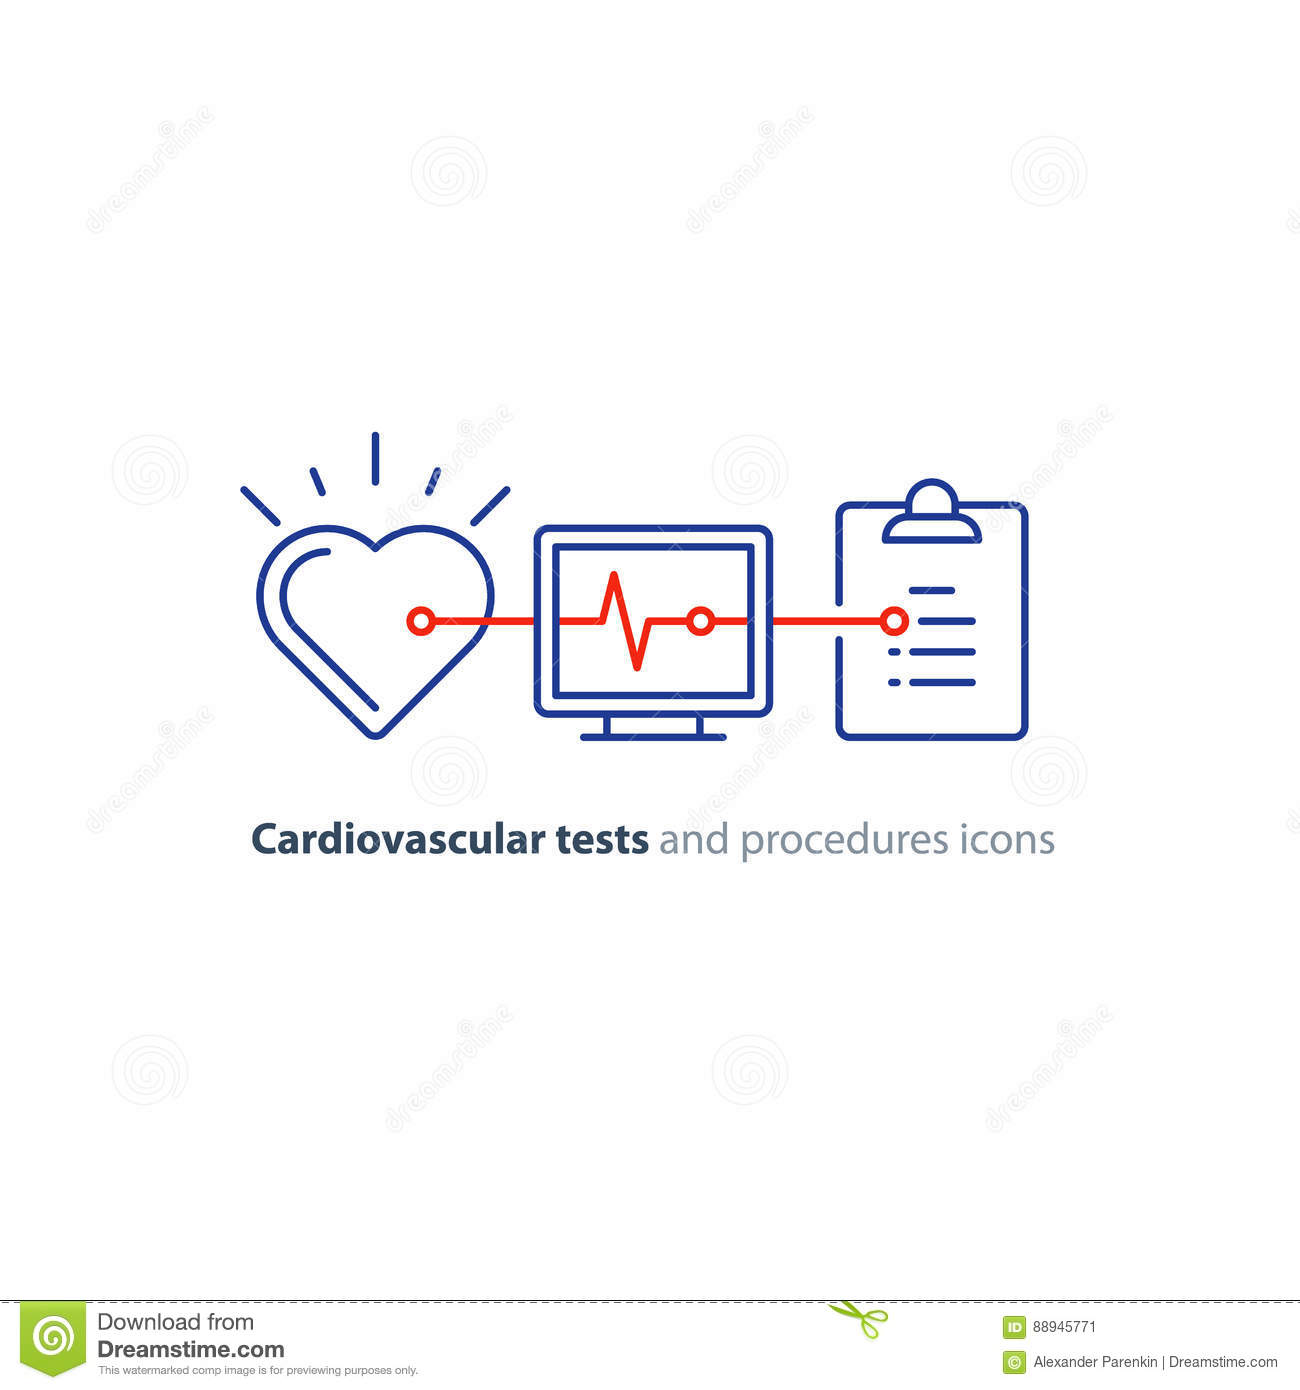 Heart test line icon electrocardiogram monitor logo cardiology download heart test line icon electrocardiogram monitor logo cardiology examination stock vector illustration ccuart Choice Image